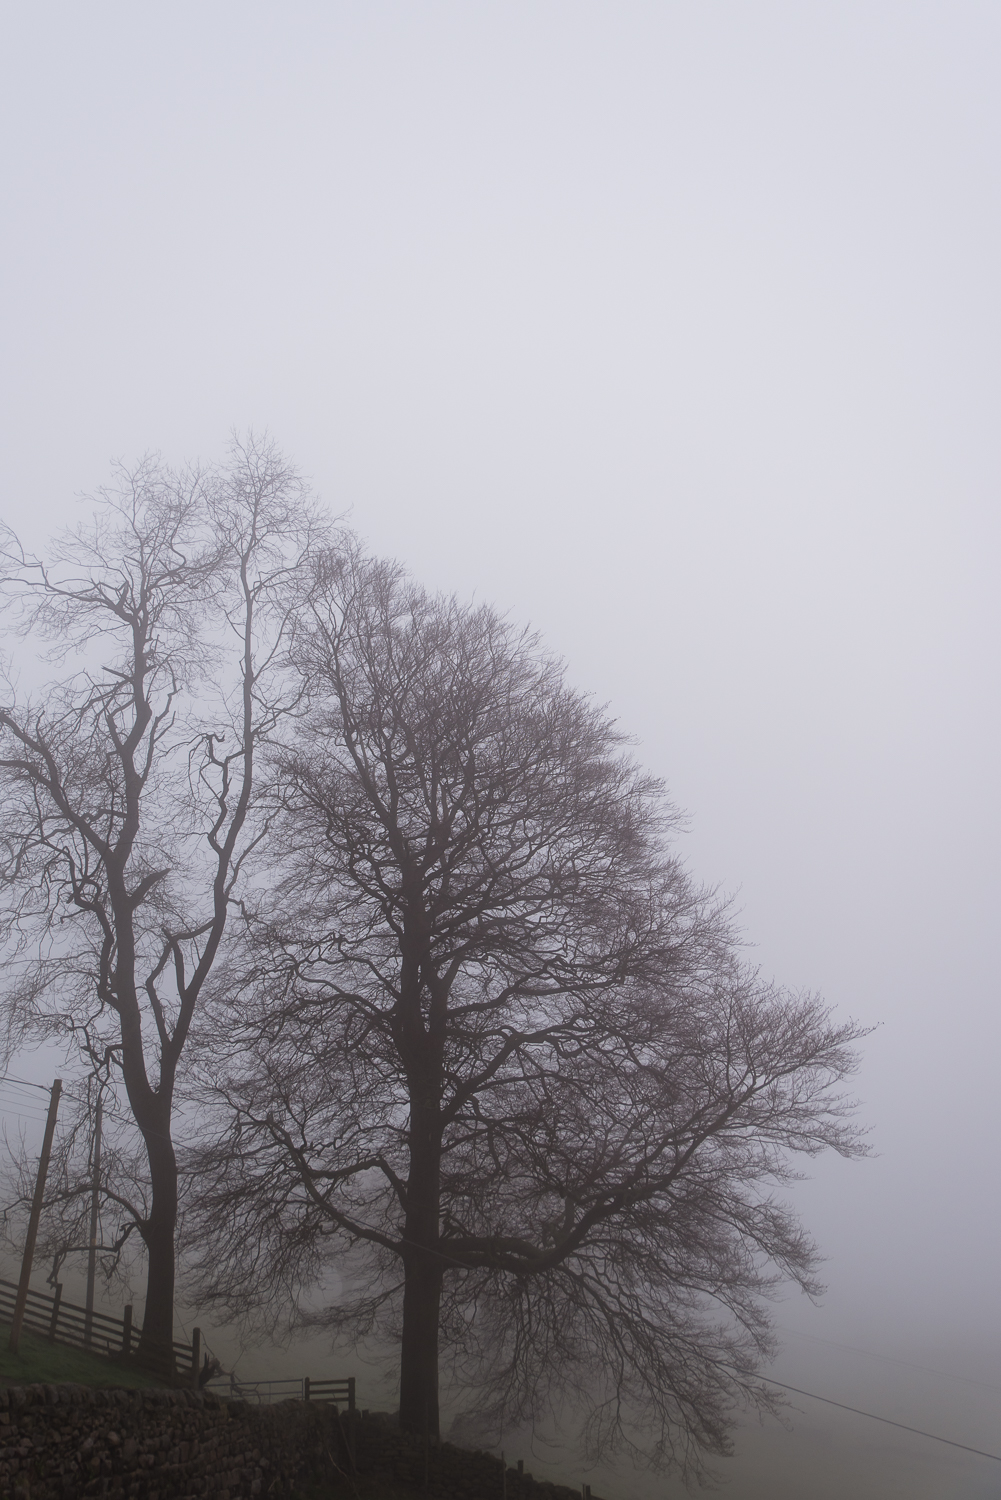 Almost silhouette-looking trees in the fog